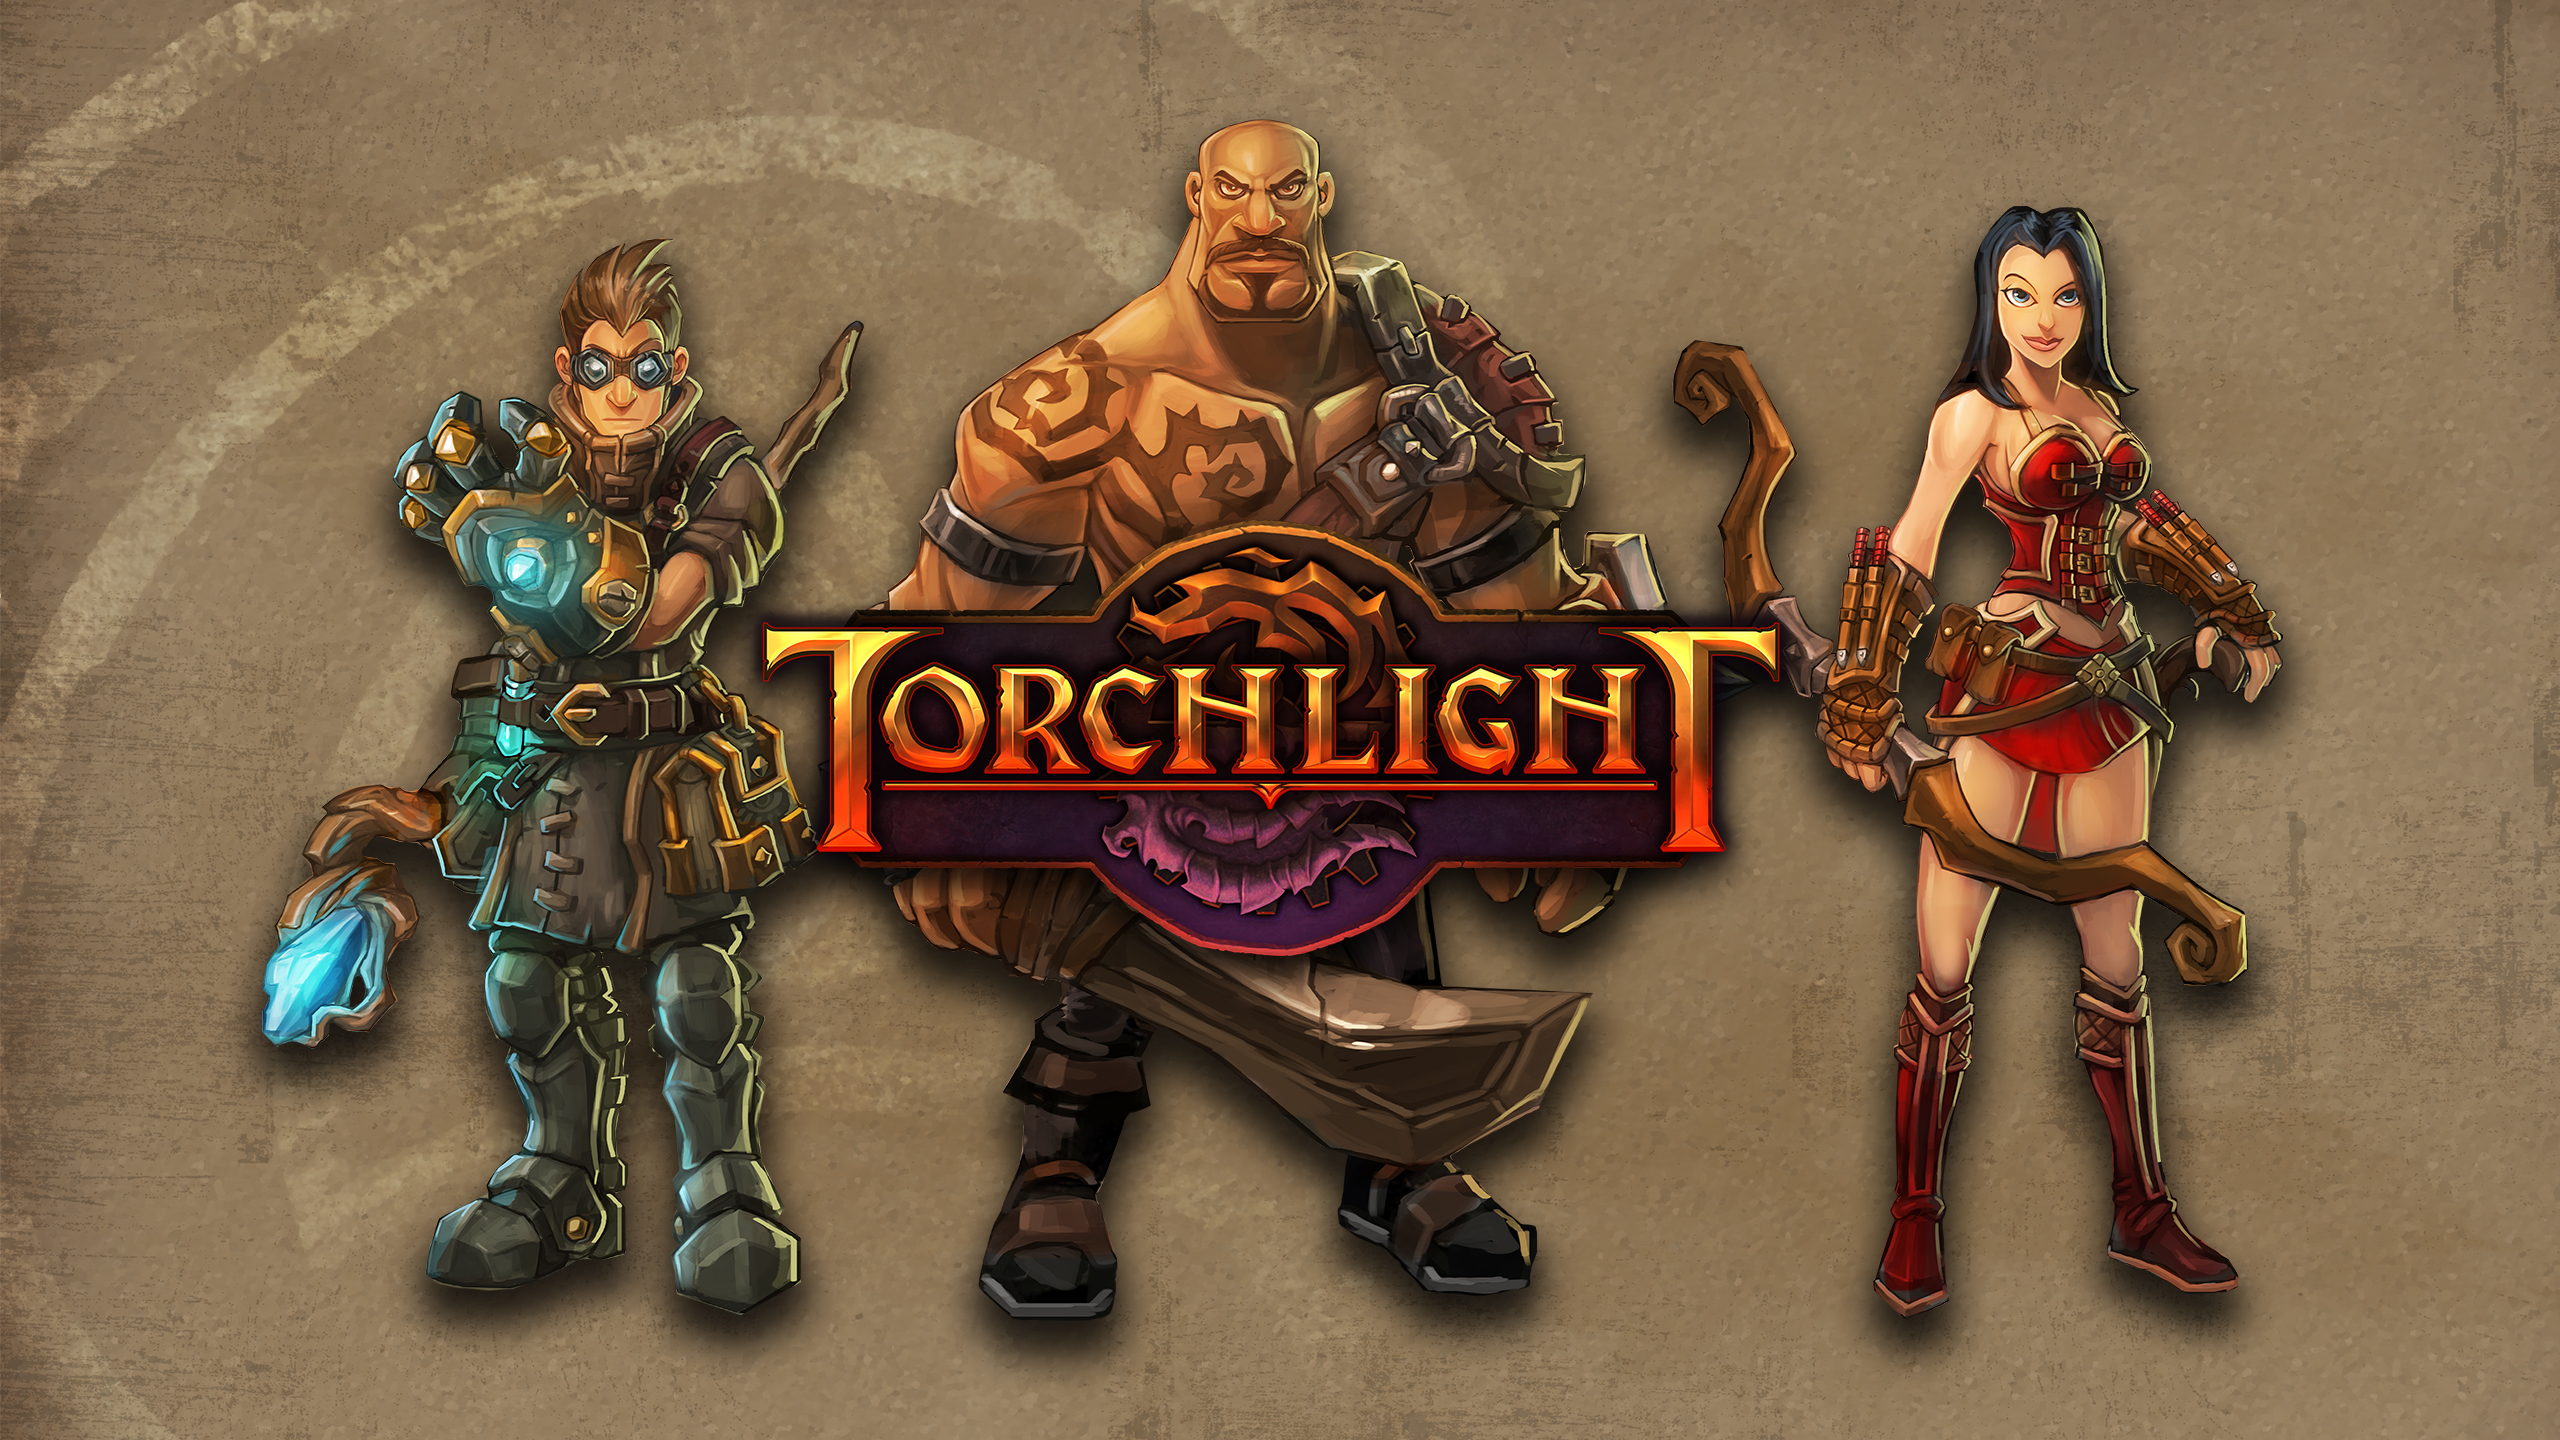 Torchlight   Download and Buy Today - Epic Games Store